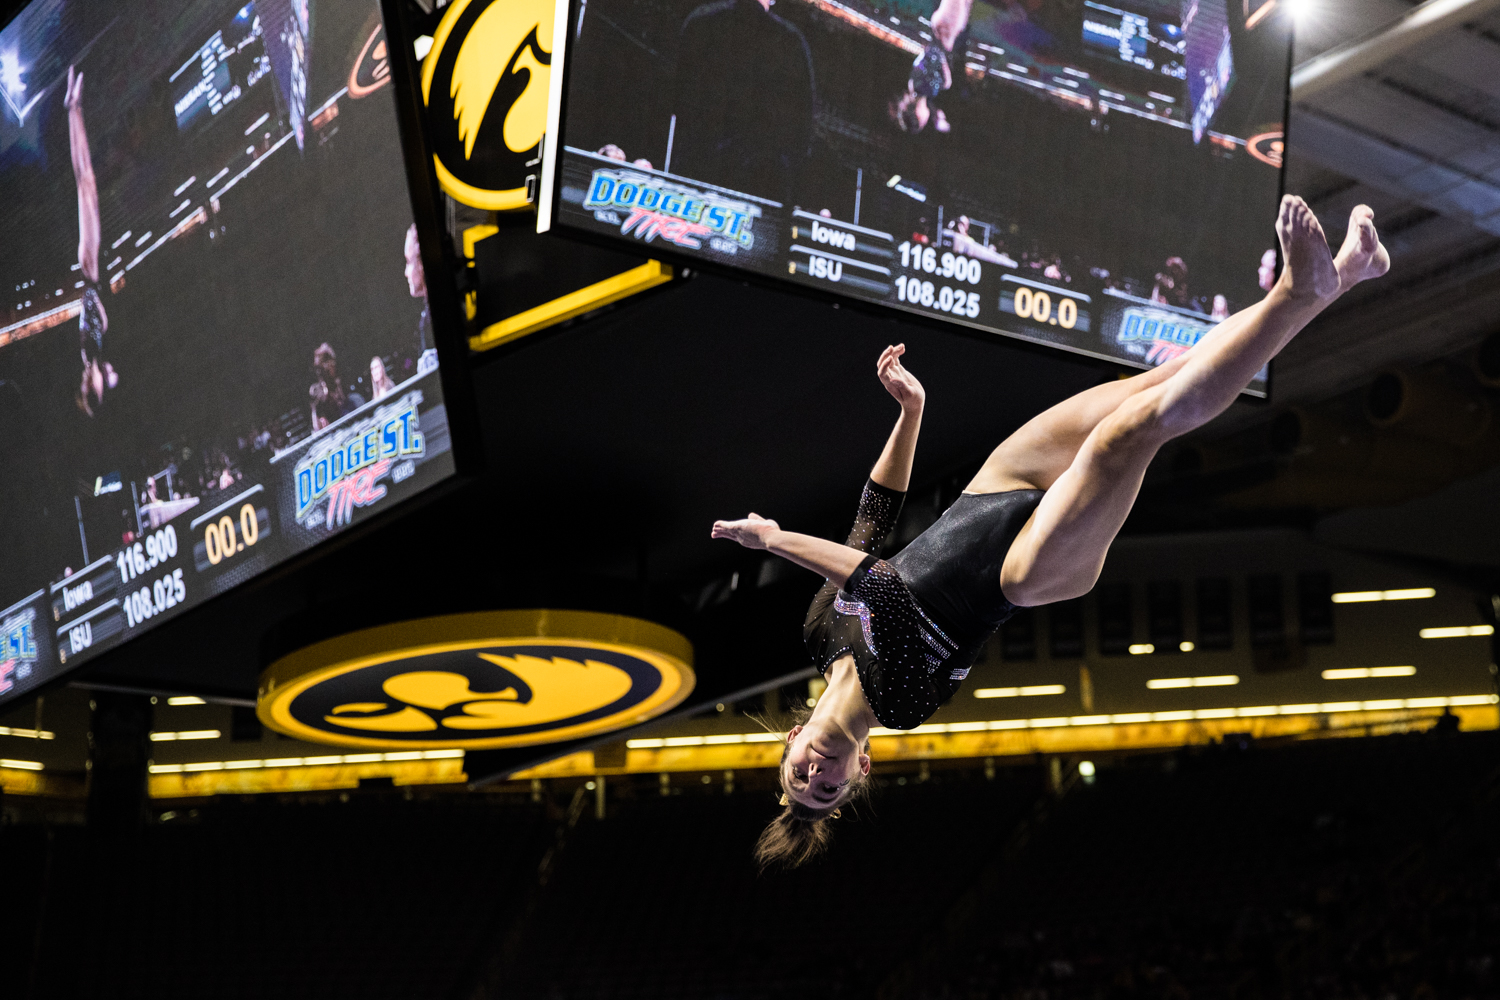 Iowa%27s+Bridget+Killian+competes+on+beam+during+a+women%27s+gymnastics+meet+between+Iowa+and+Iowa+State+at+Carver-Hawkeye+Arena+on+Friday%2C+March+1%2C+2019.+Killian+scored+9.775+in+the+event.+The+Hawkeyes%2C+celebrating+senior+night%2C+fell+to+the+Cyclones%2C+196.275-196.250.